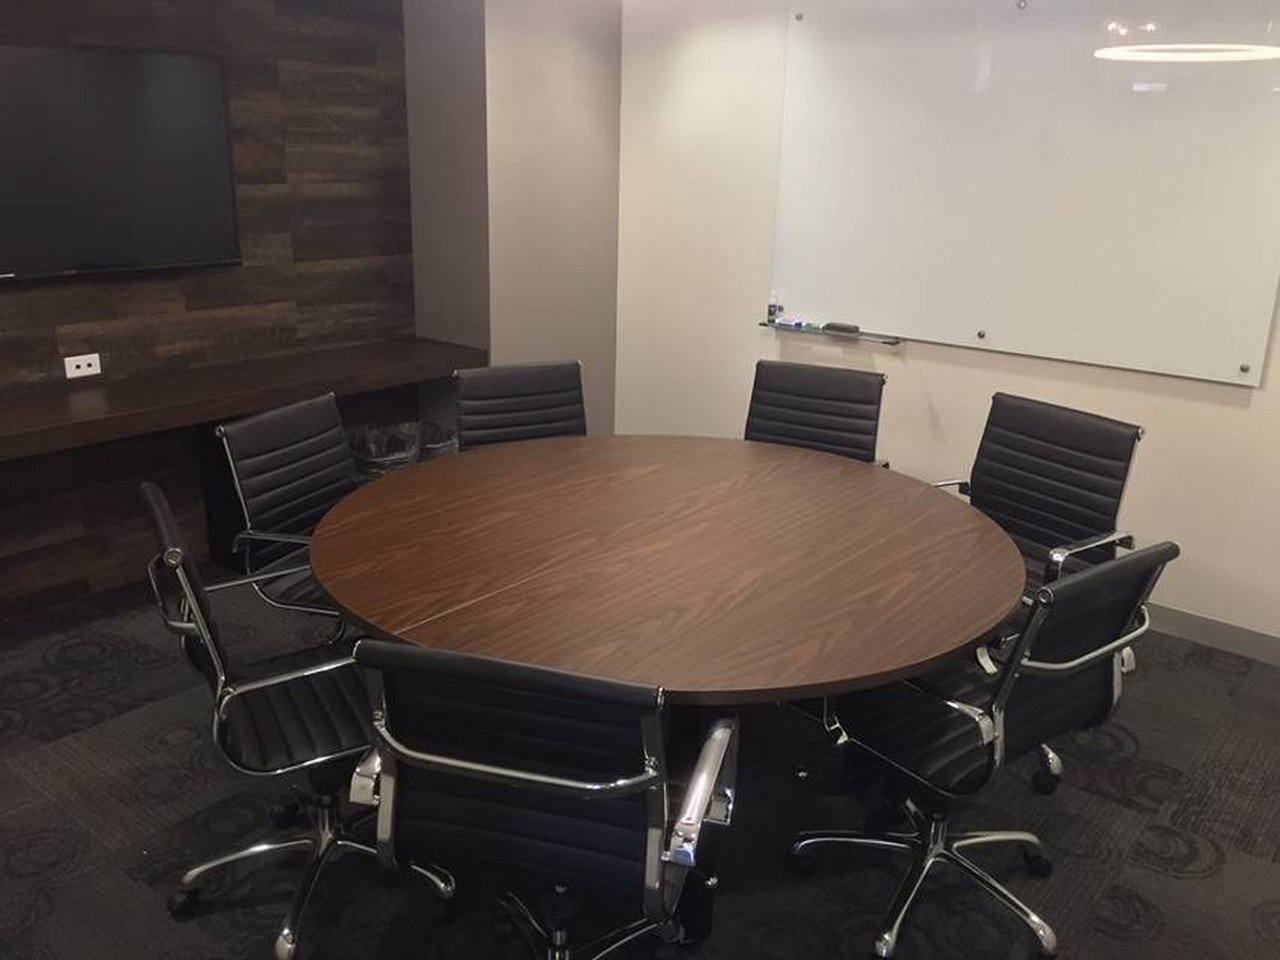 NYC conference rooms Meeting room Corporate Suites Round Table Conference Room 20C image 0